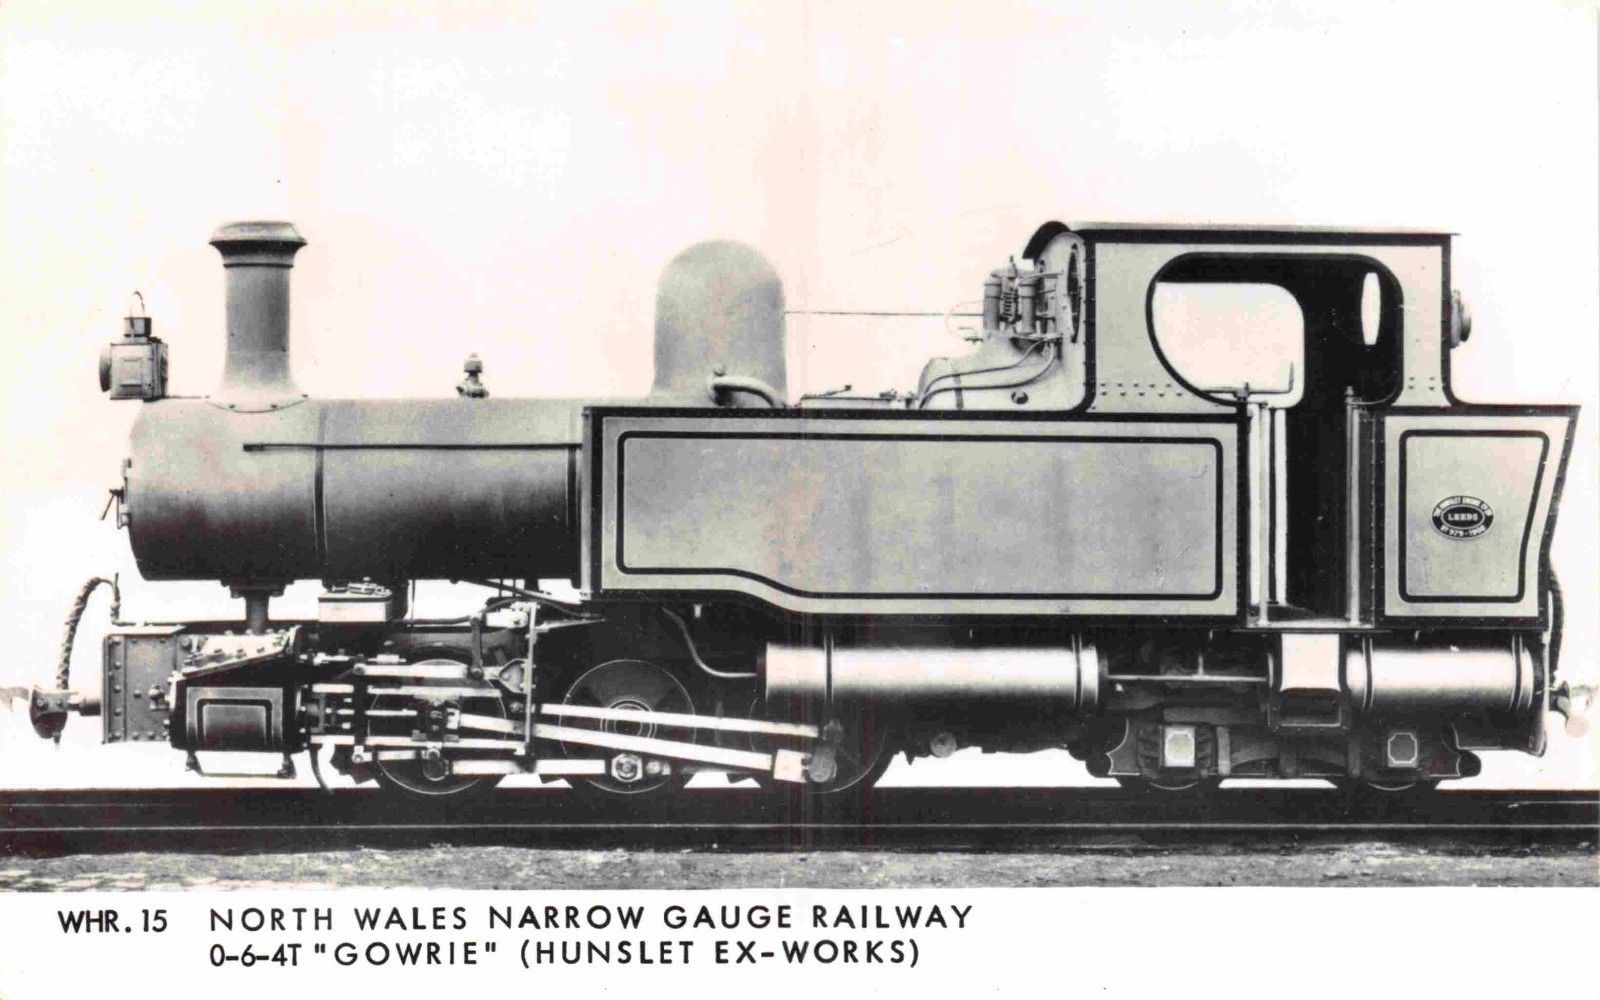 Postcard GOWRIE 0-6-4T Steam Locomotive North Wales Narrow